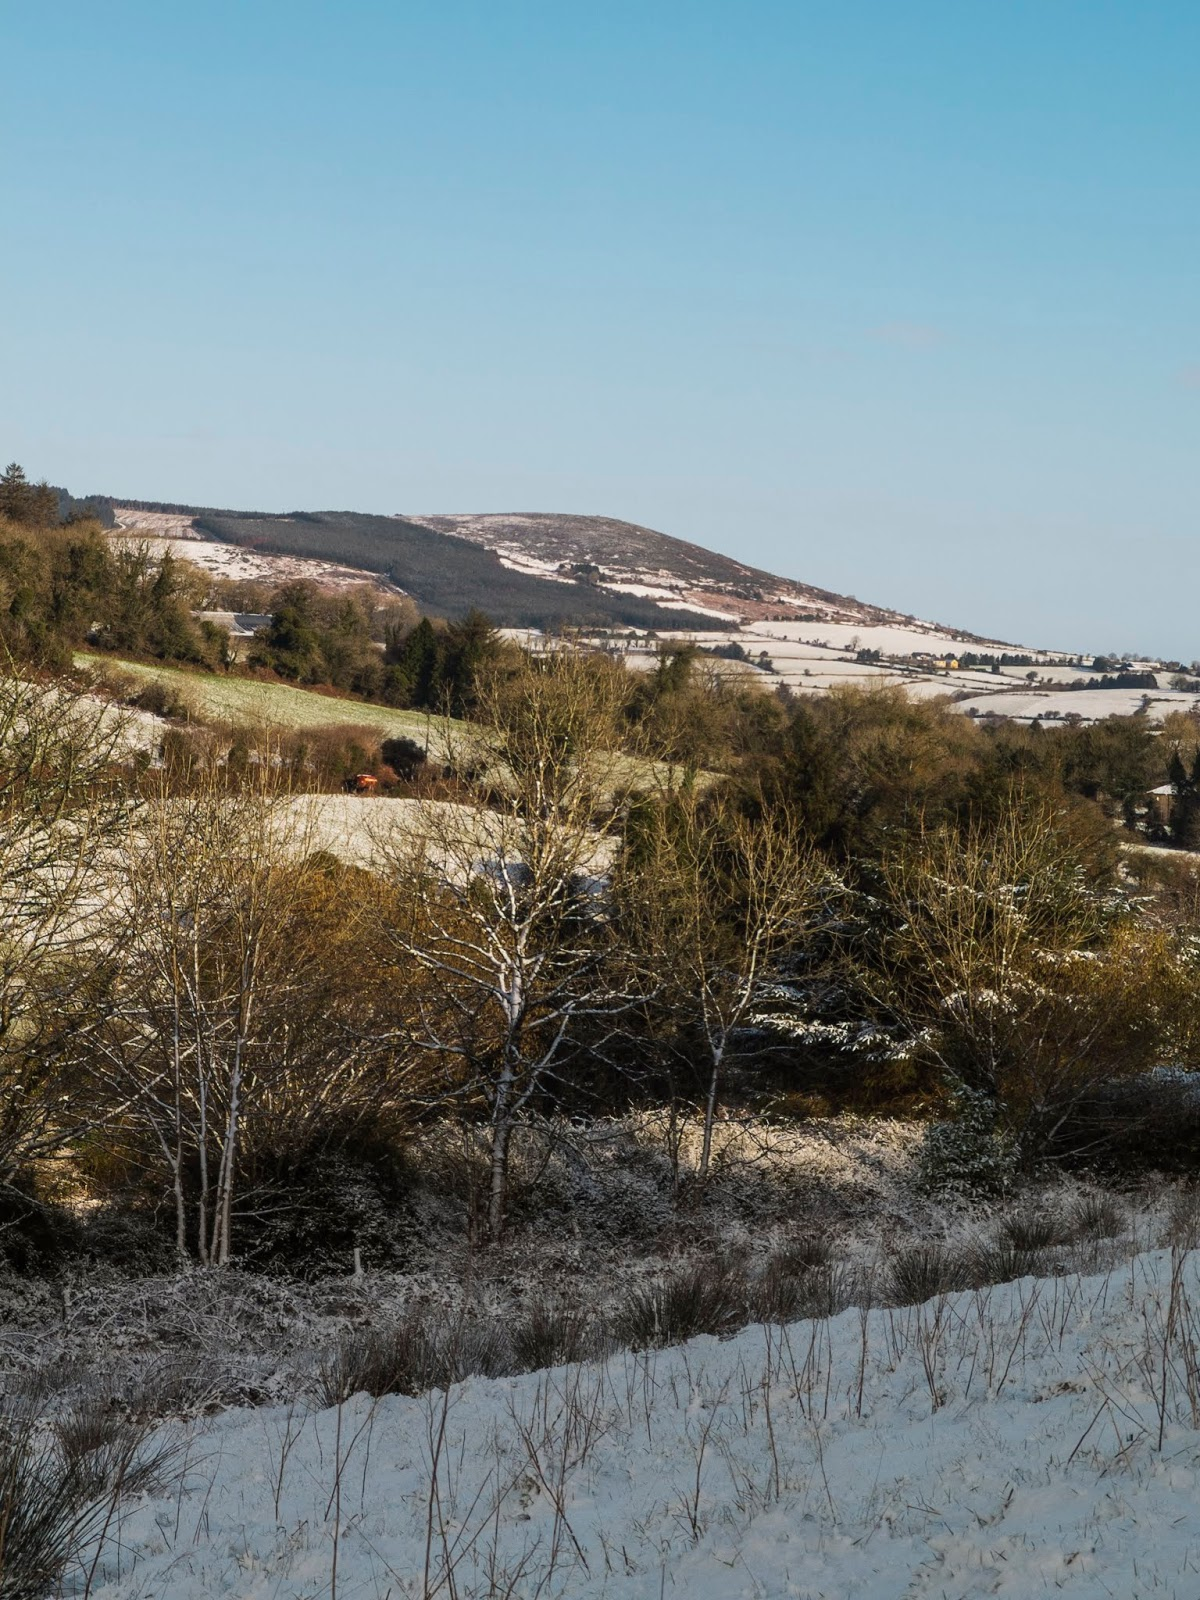 A snowy winter landscape on a sunny day in County Cork.